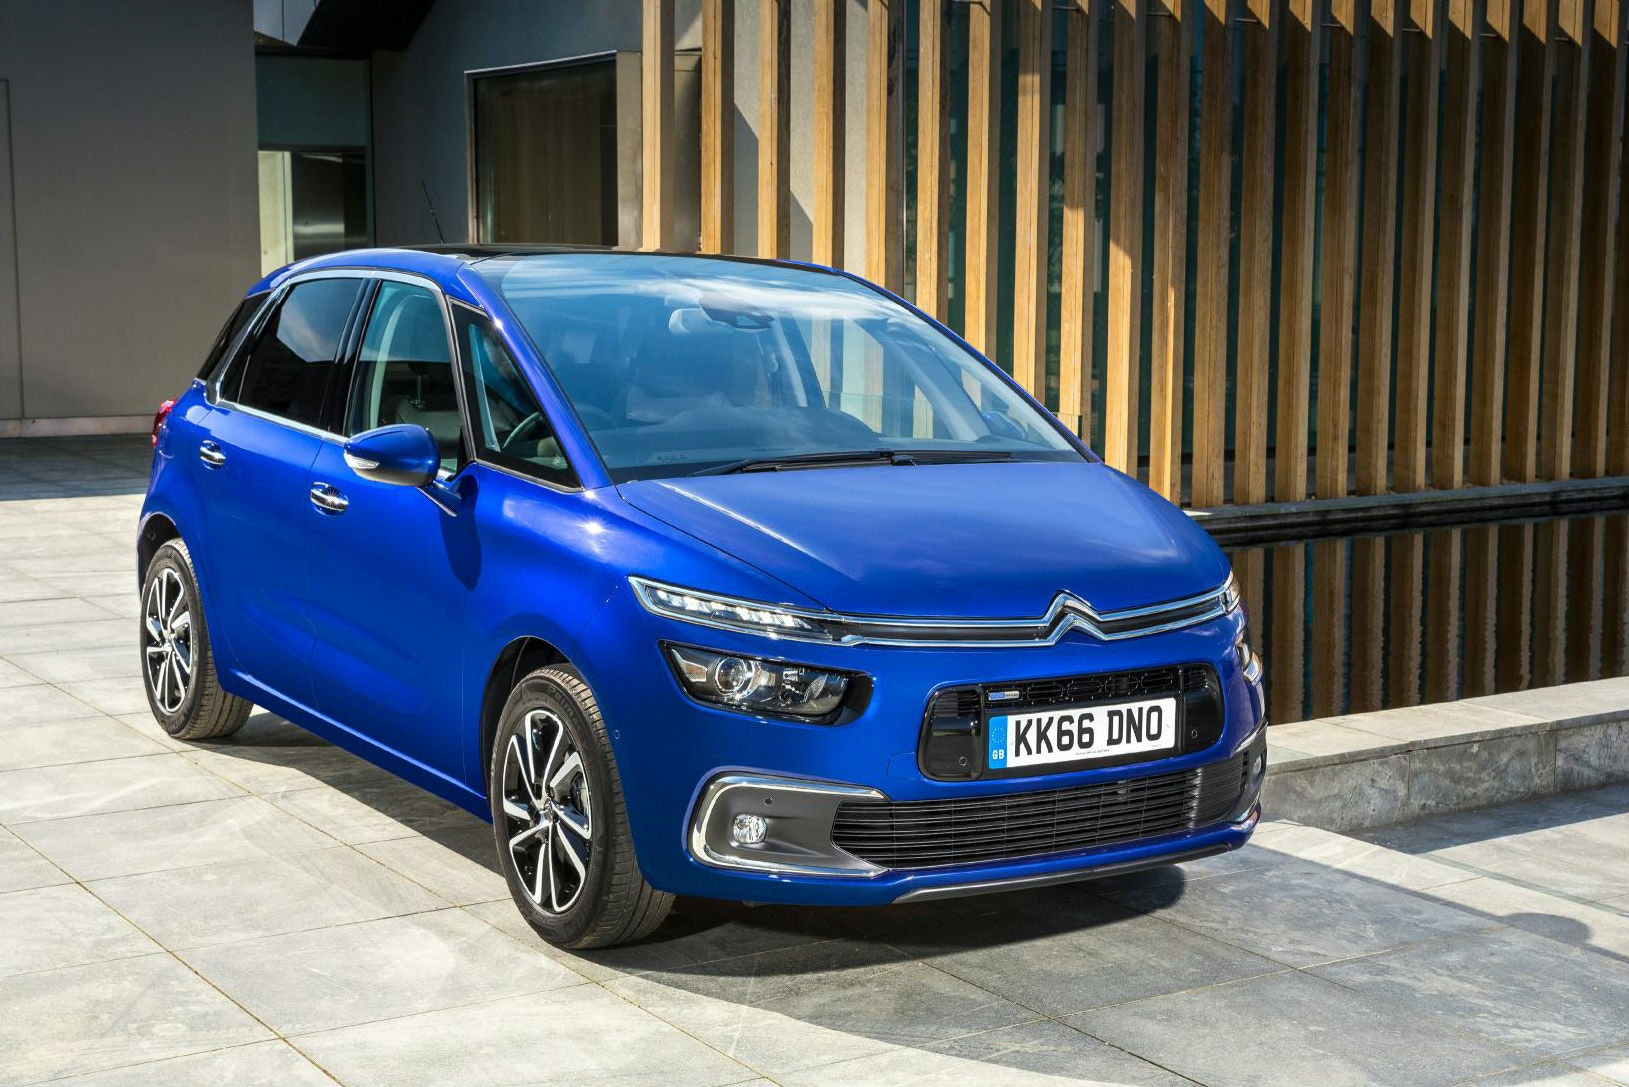 C4 Picasso is a great looking people carrier for less than £10,000.